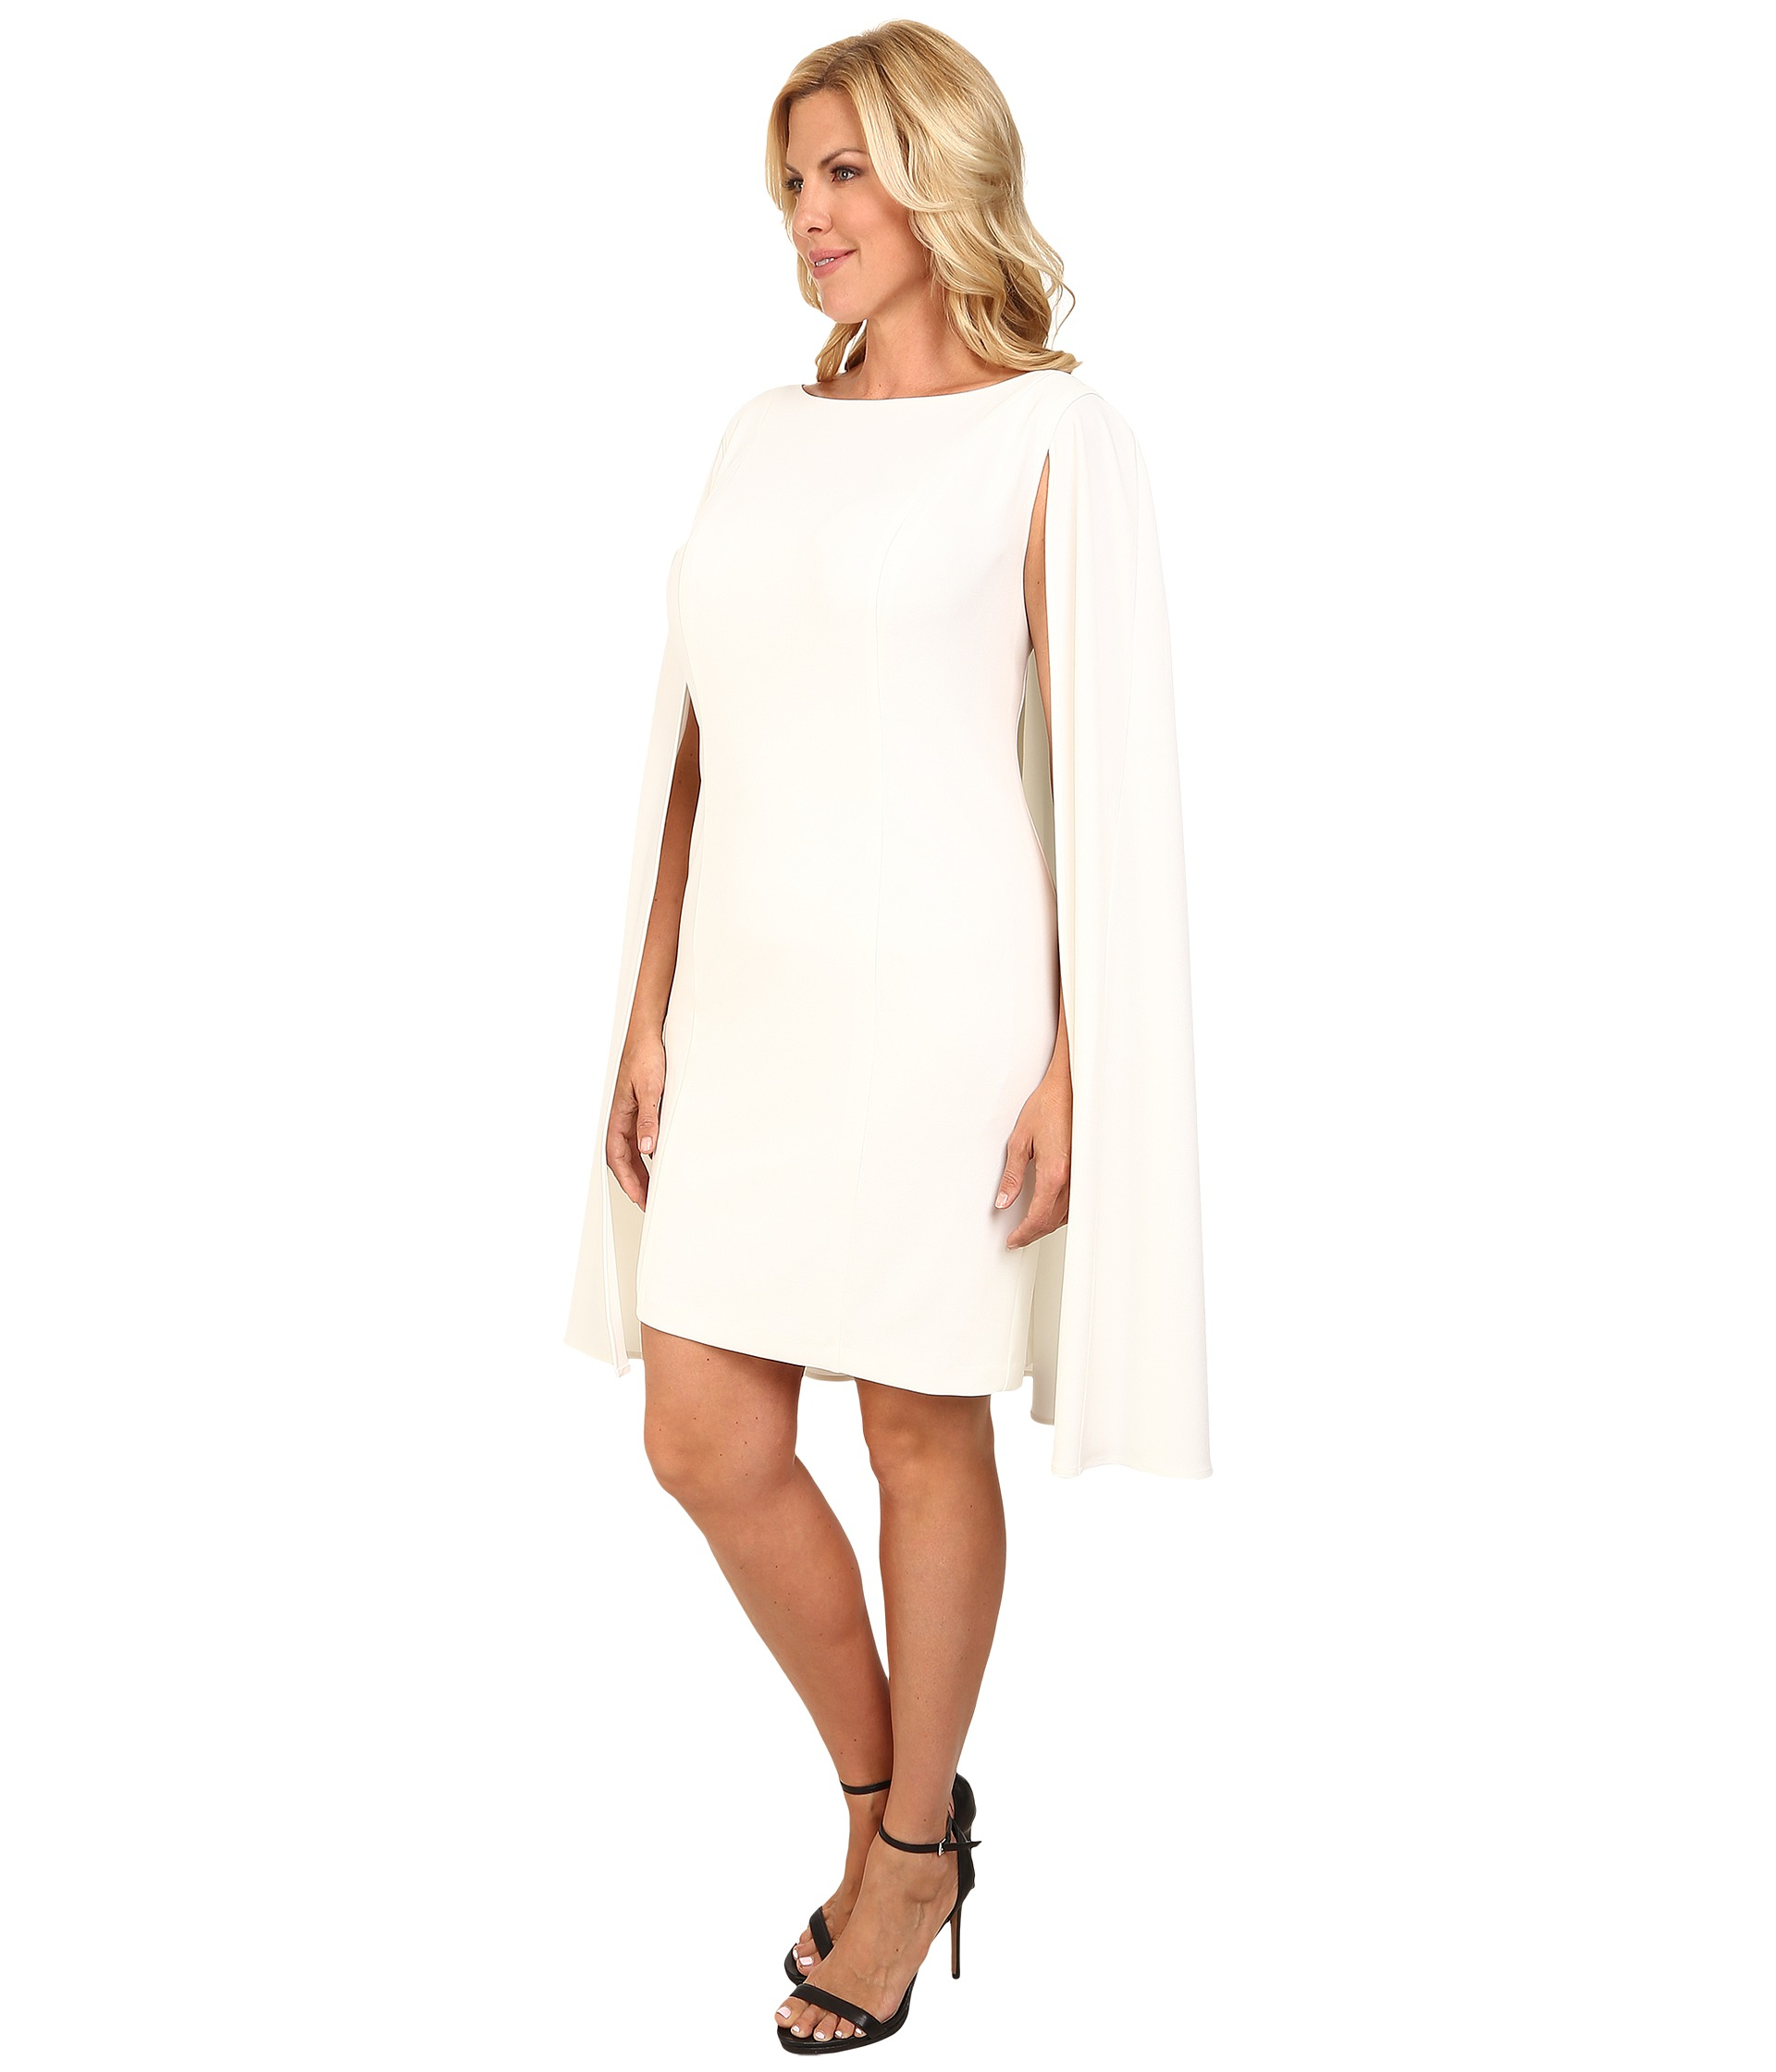 10515701c08 Lyst - Adrianna Papell Plus Size Structured Cape Sheath Dress in White